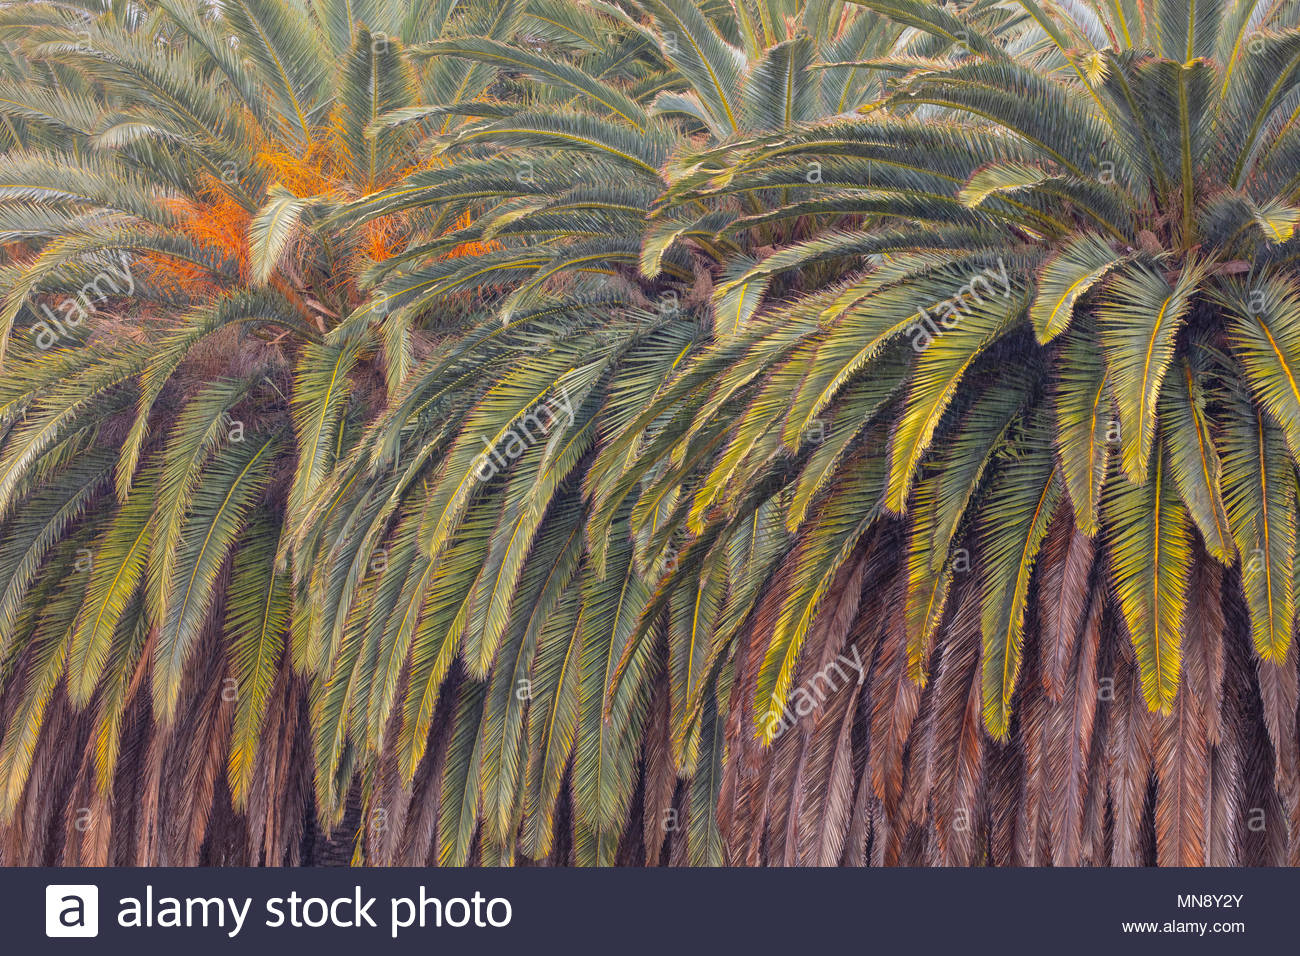 The range of green and brown colors in palm fronds are visible in this tight cluster of trees near the Malibu Lagoon in Malibu, California. - Stock Image